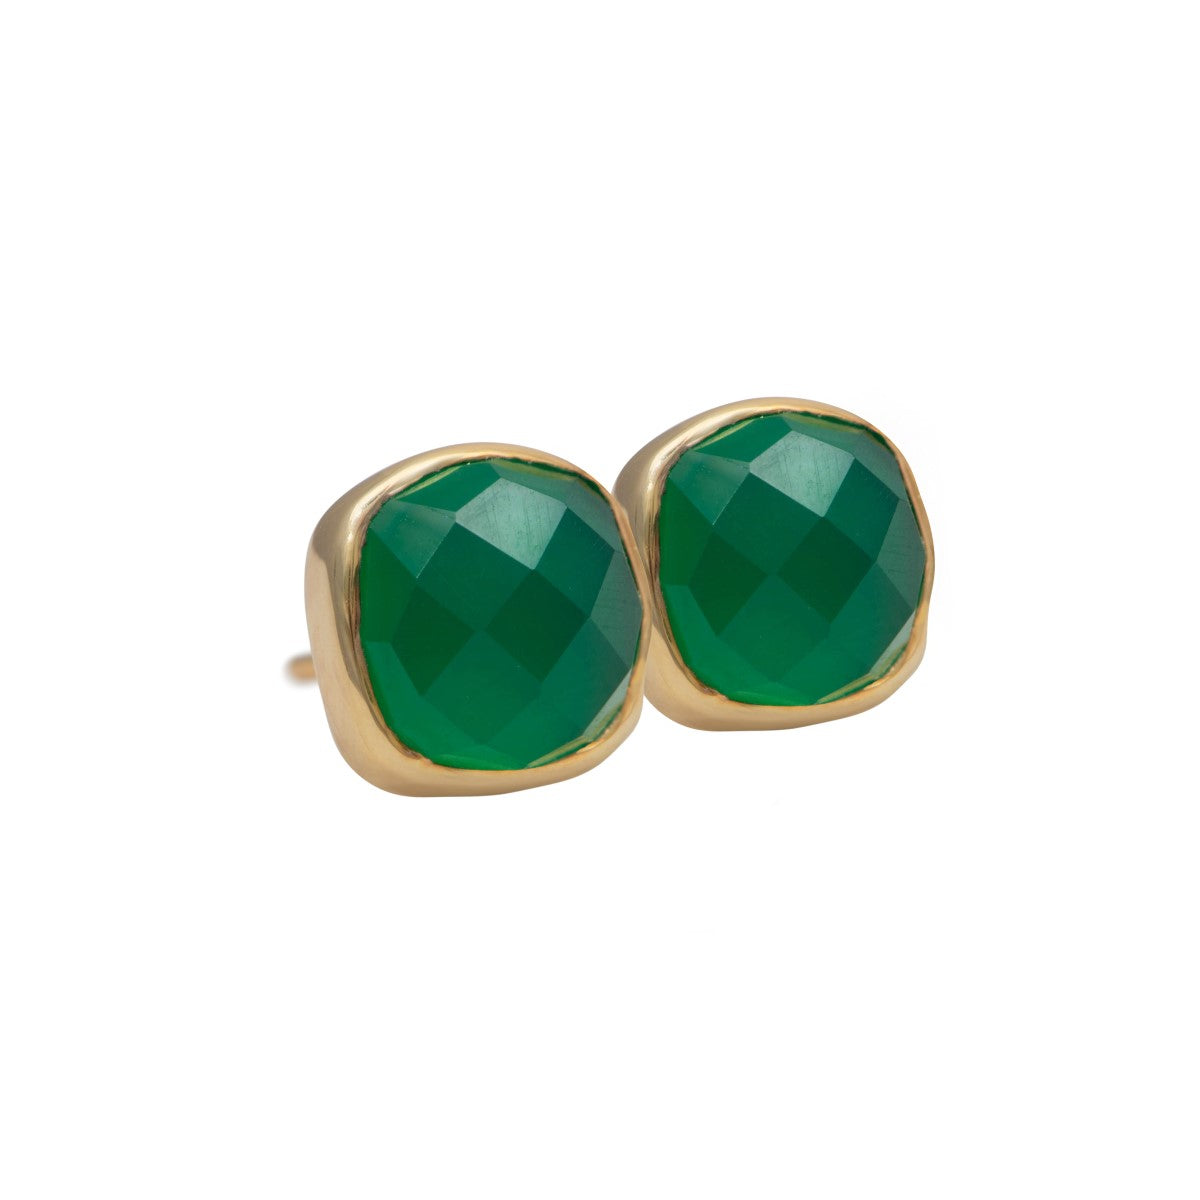 Faceted Square Green Onyx Gemstone Stud Earrings in Gold Plated Sterling Silver